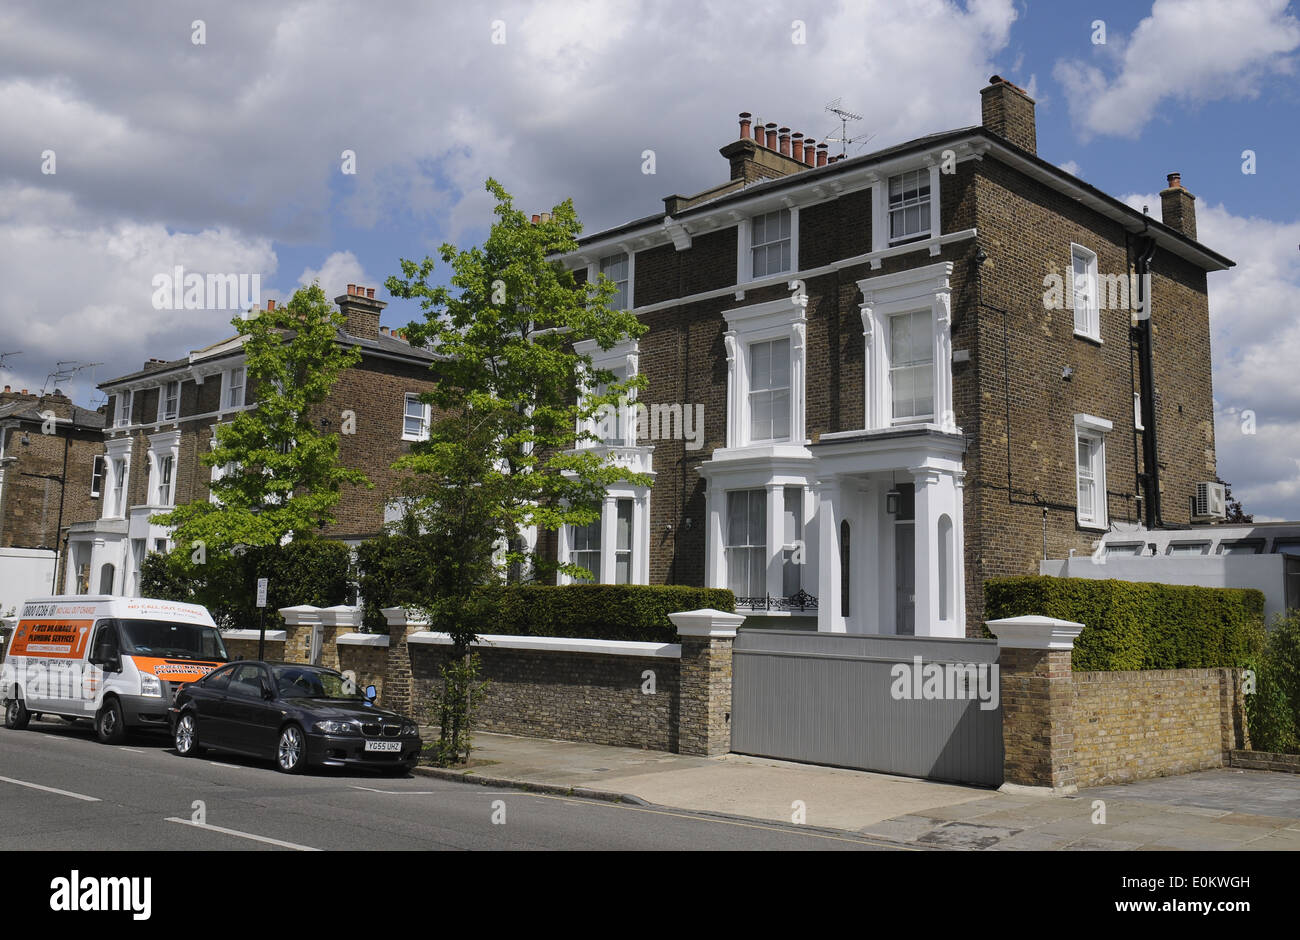 Gwyneth Paltrow Chris Martins London Home In Belsize ParkLondon UK